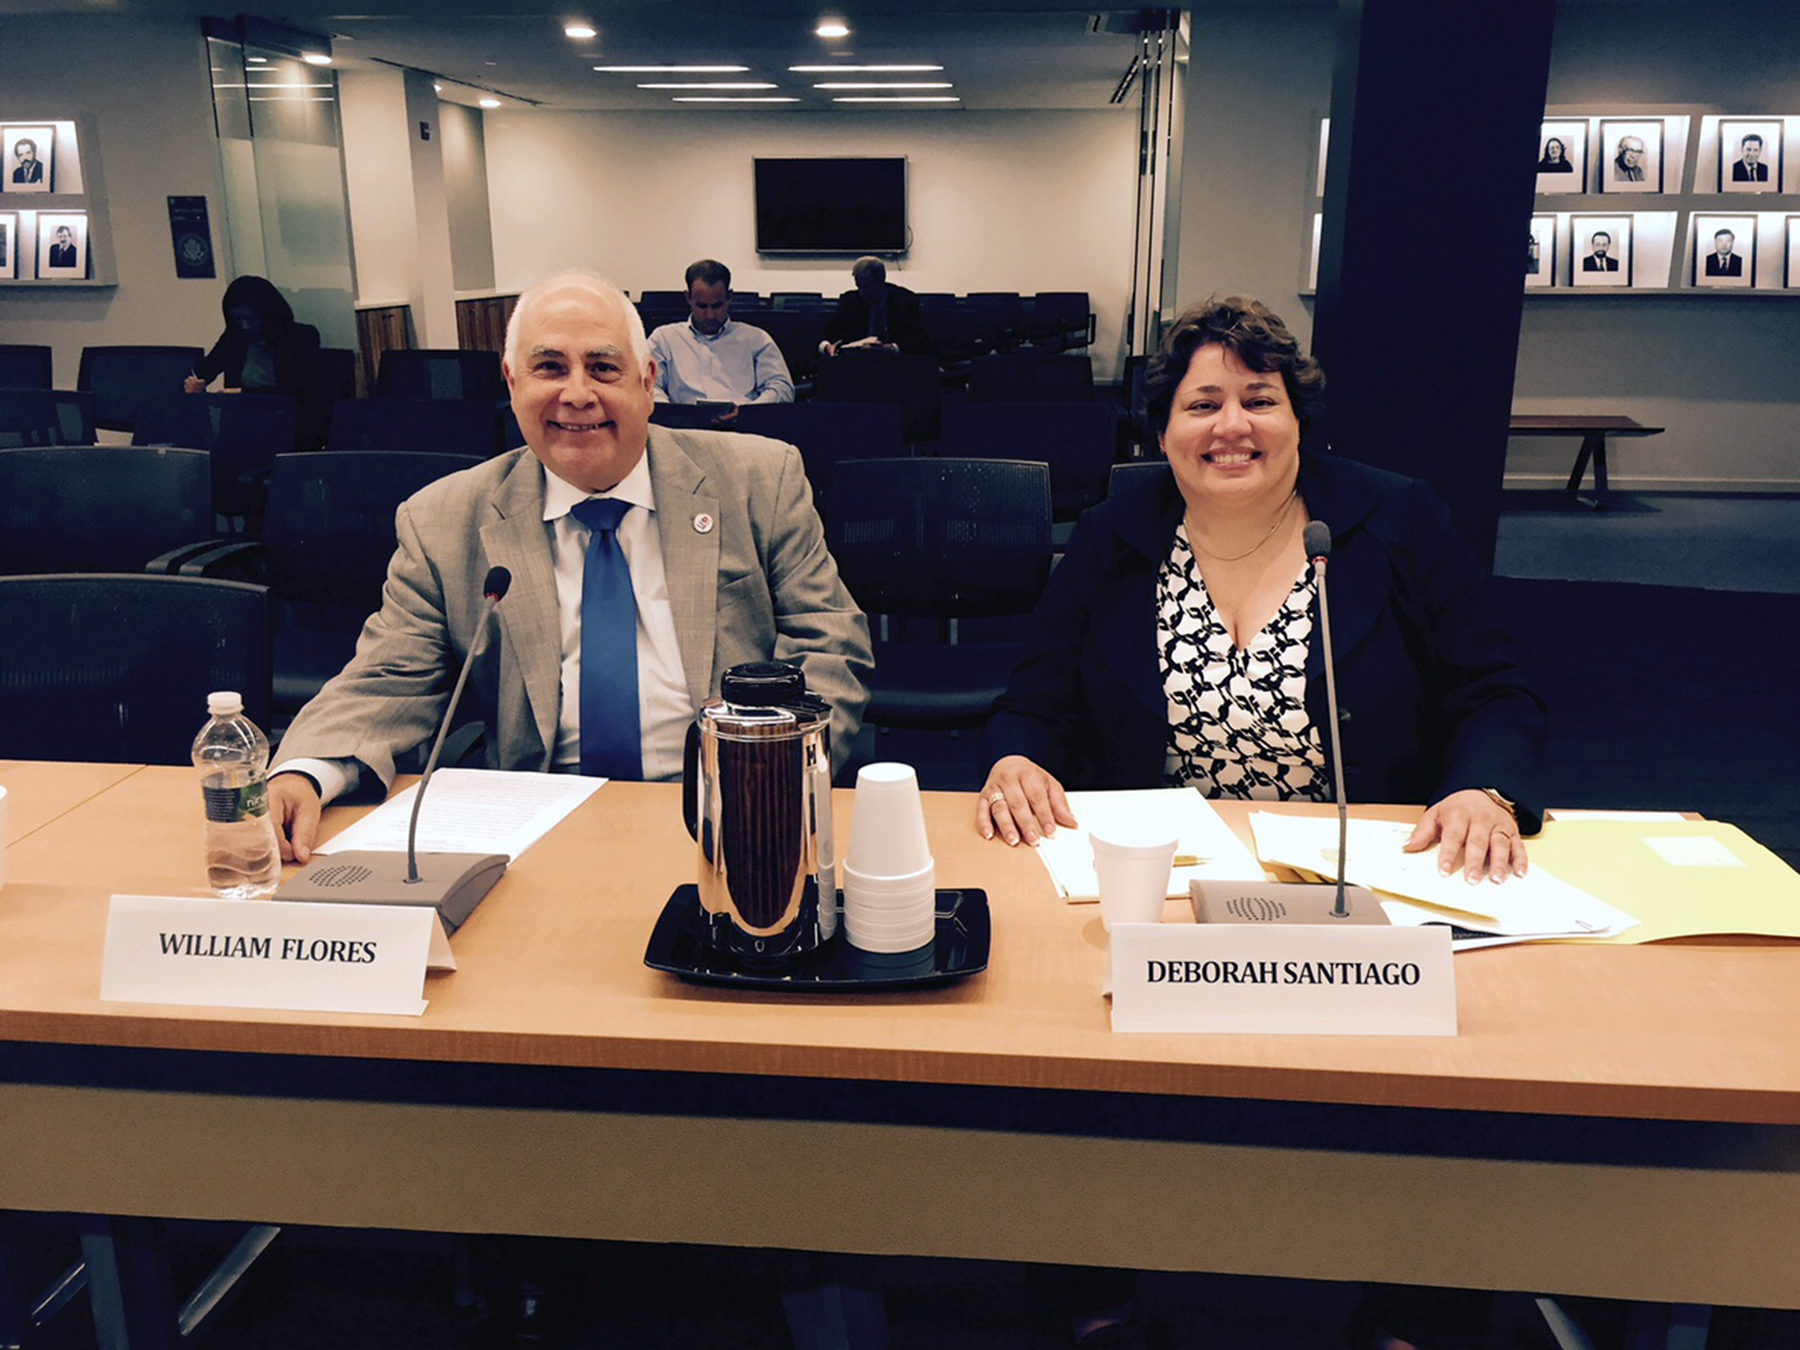 Bill Flores, Ph.D., (left), president of the University of Houston-Downtown (UHD) and secretary of the Hispanic Association of Colleges and Universities (HACU) board of directors, prepares to testify at a U.S. Commission on Civil Rights briefing on Thursday, May 28 in Washington, D.C. He is joined by Deborah Santiago, chief operating officer and vice president for policy at Excelencia in Education, for the briefing on the effect of college access, persistence and completion rates on the socioeconomic mobility of minorities.